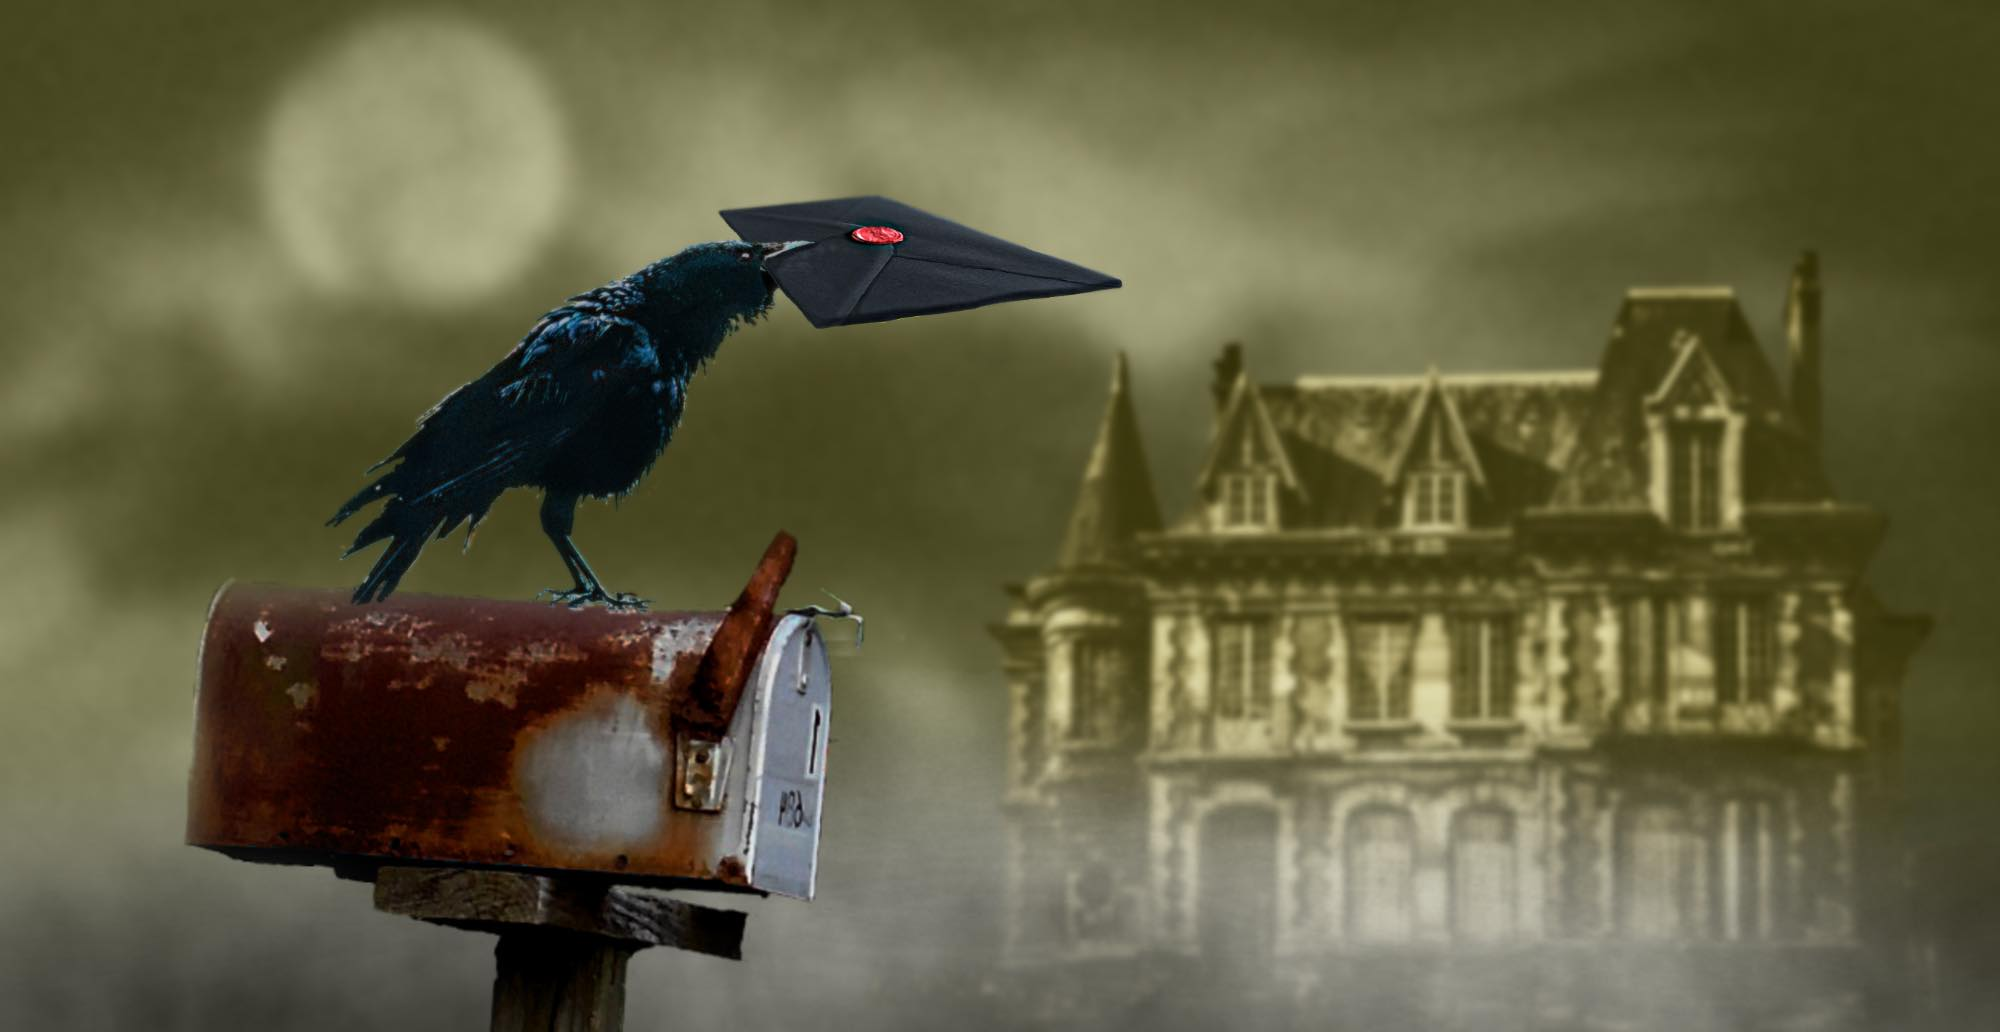 A raven delivering a mysterious mail to a letterbox in front of an old spooky mansion on a misty evening